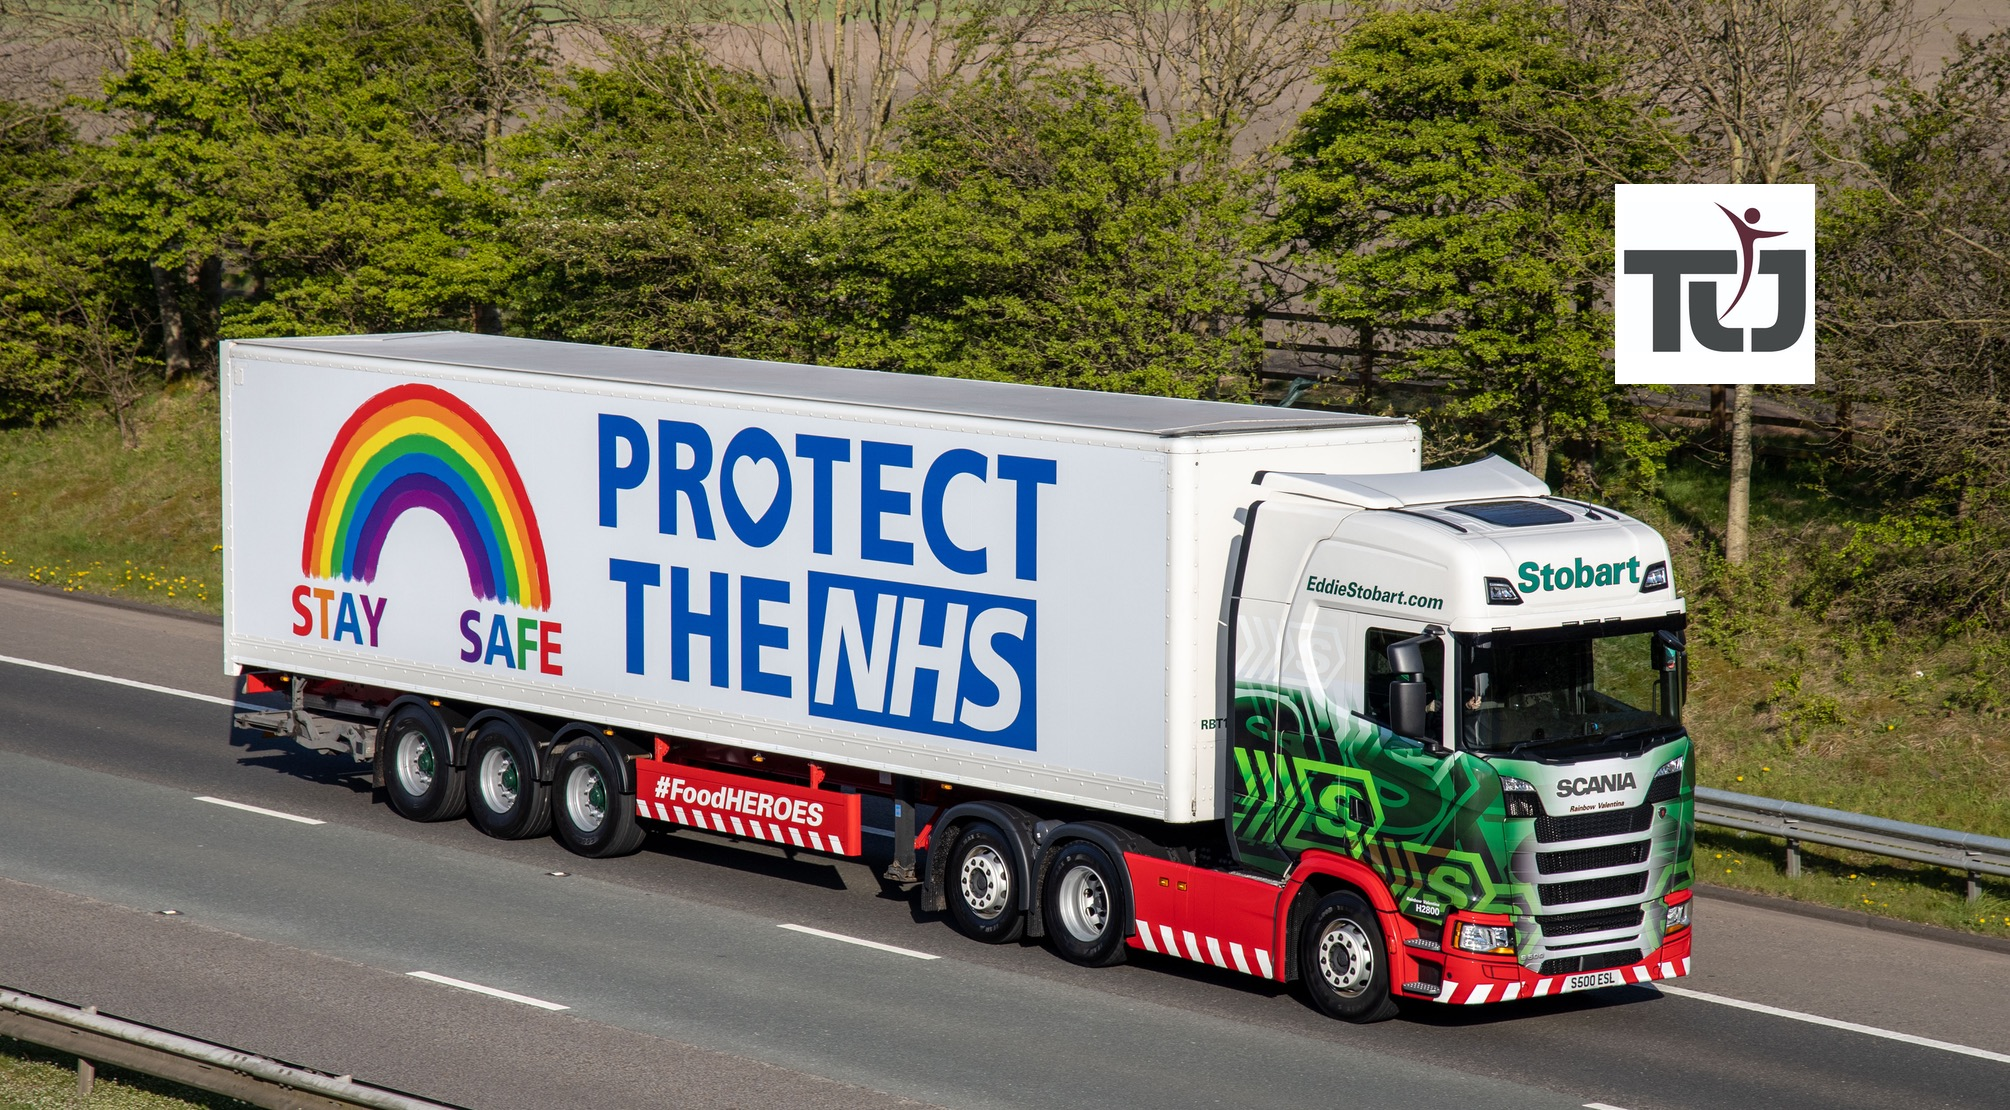 Eddie Stobart supports national effort to combat Covid-19